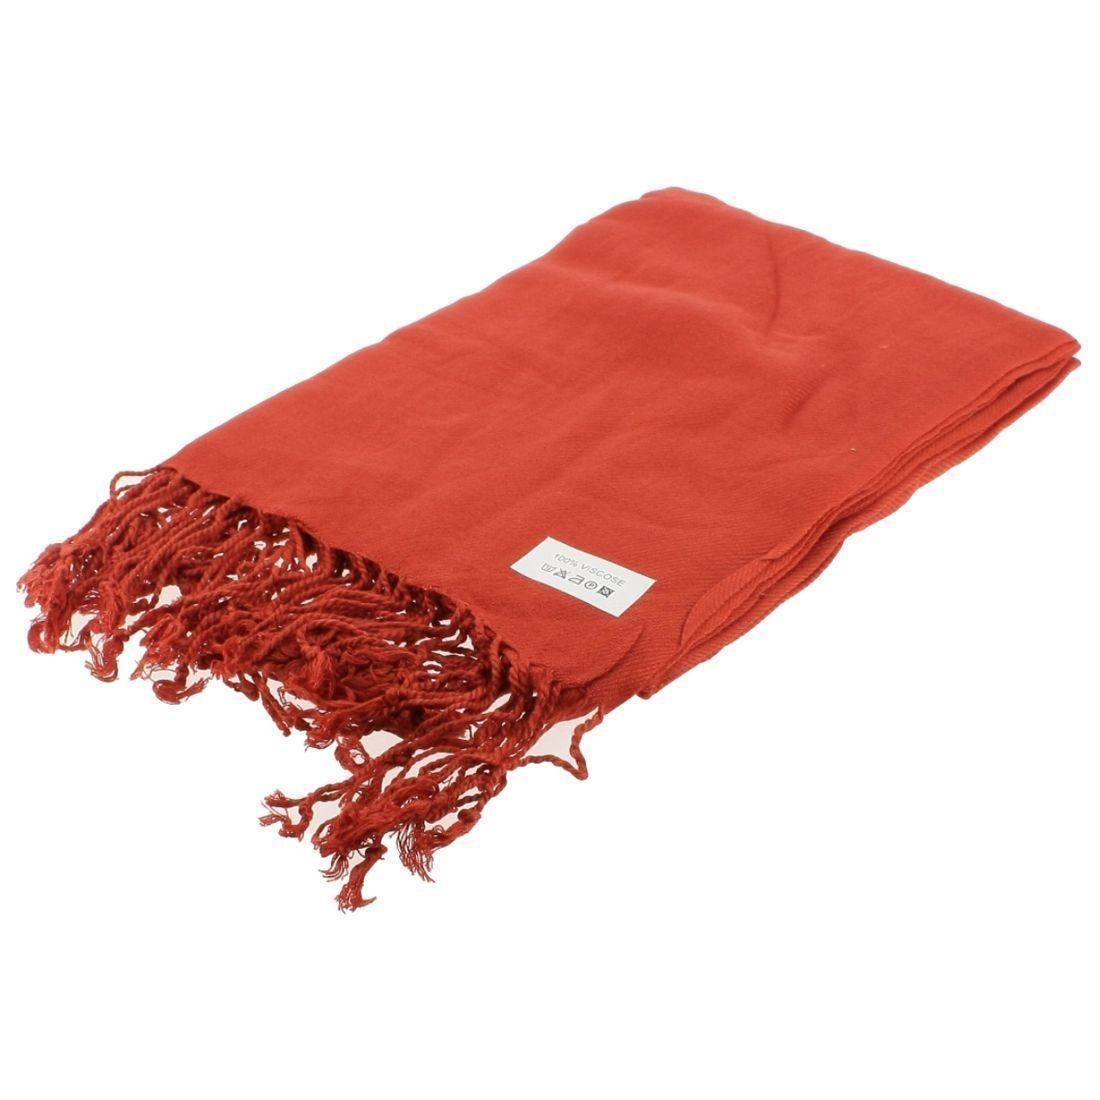 GRAND COURT C PASHMINA:ROUGE/VISCOSE/VISCOSE//Rouge